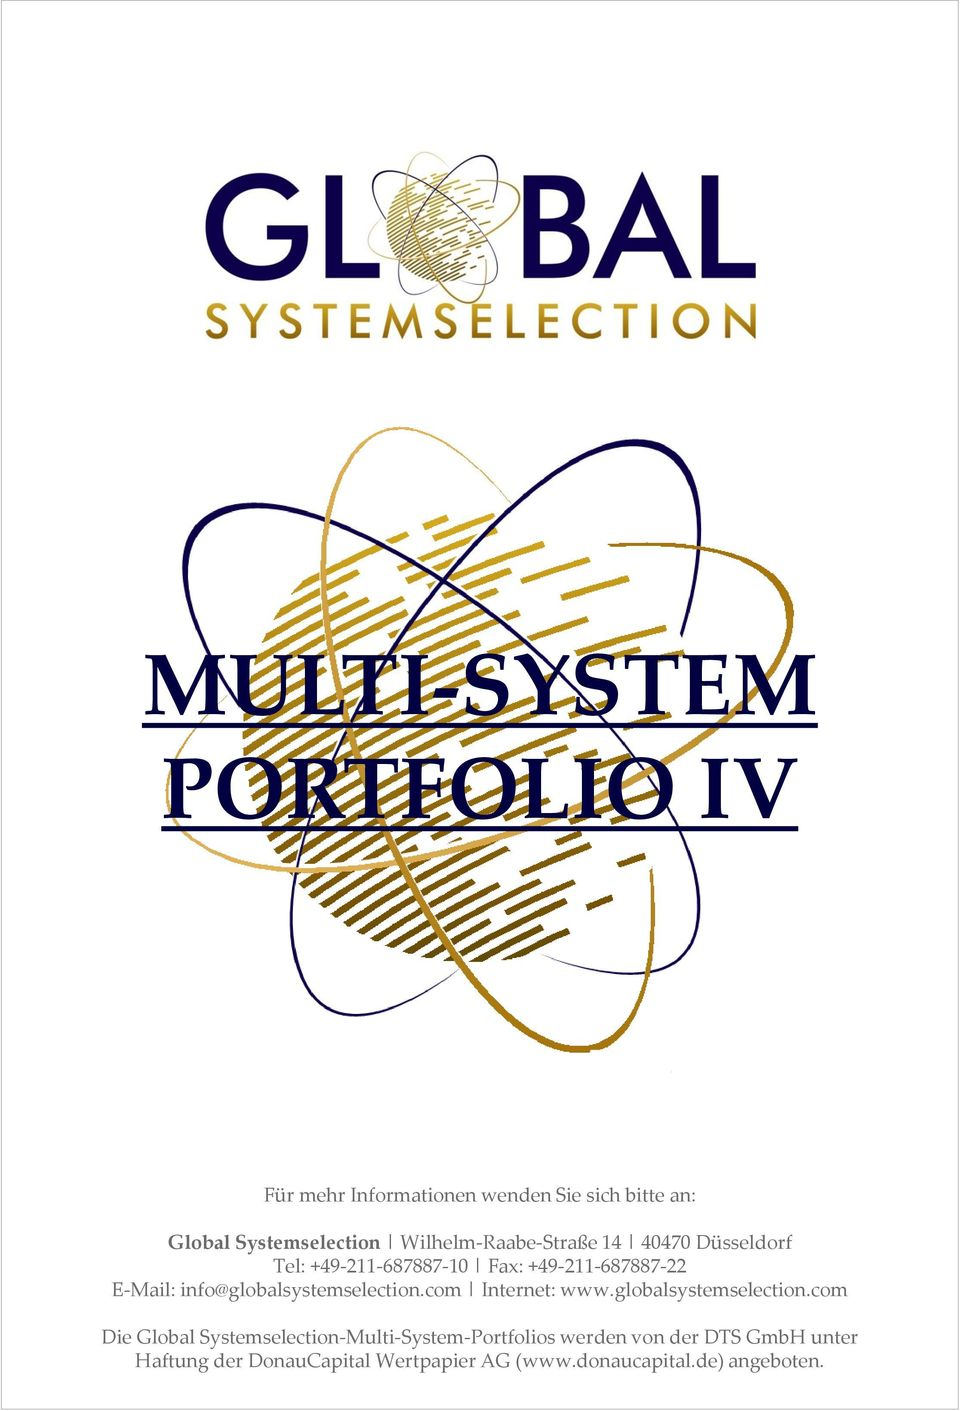 info@globalsystemselection.